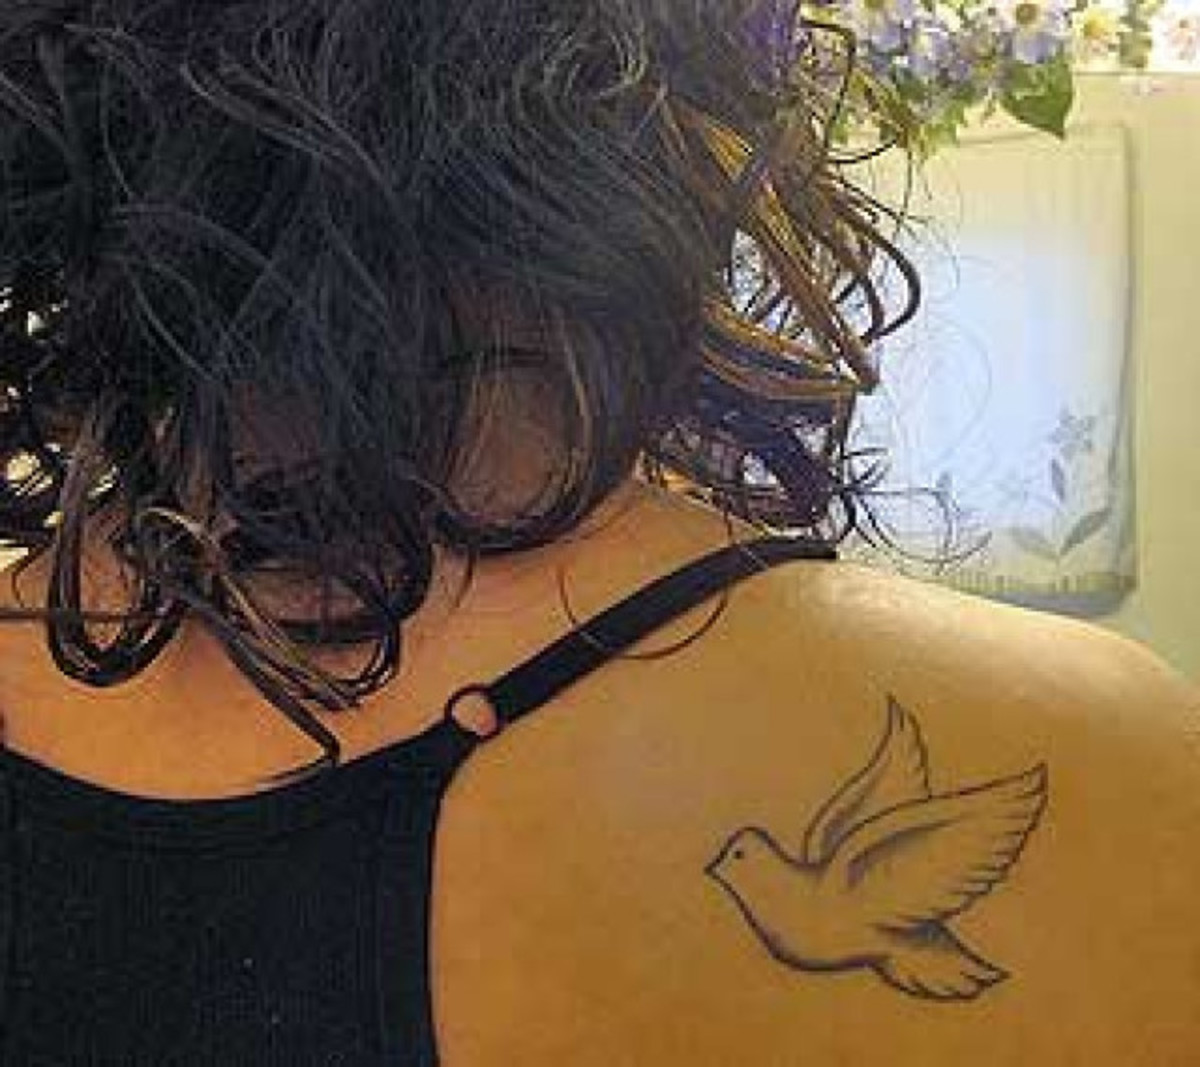 Small dove tattoo on shoulder.